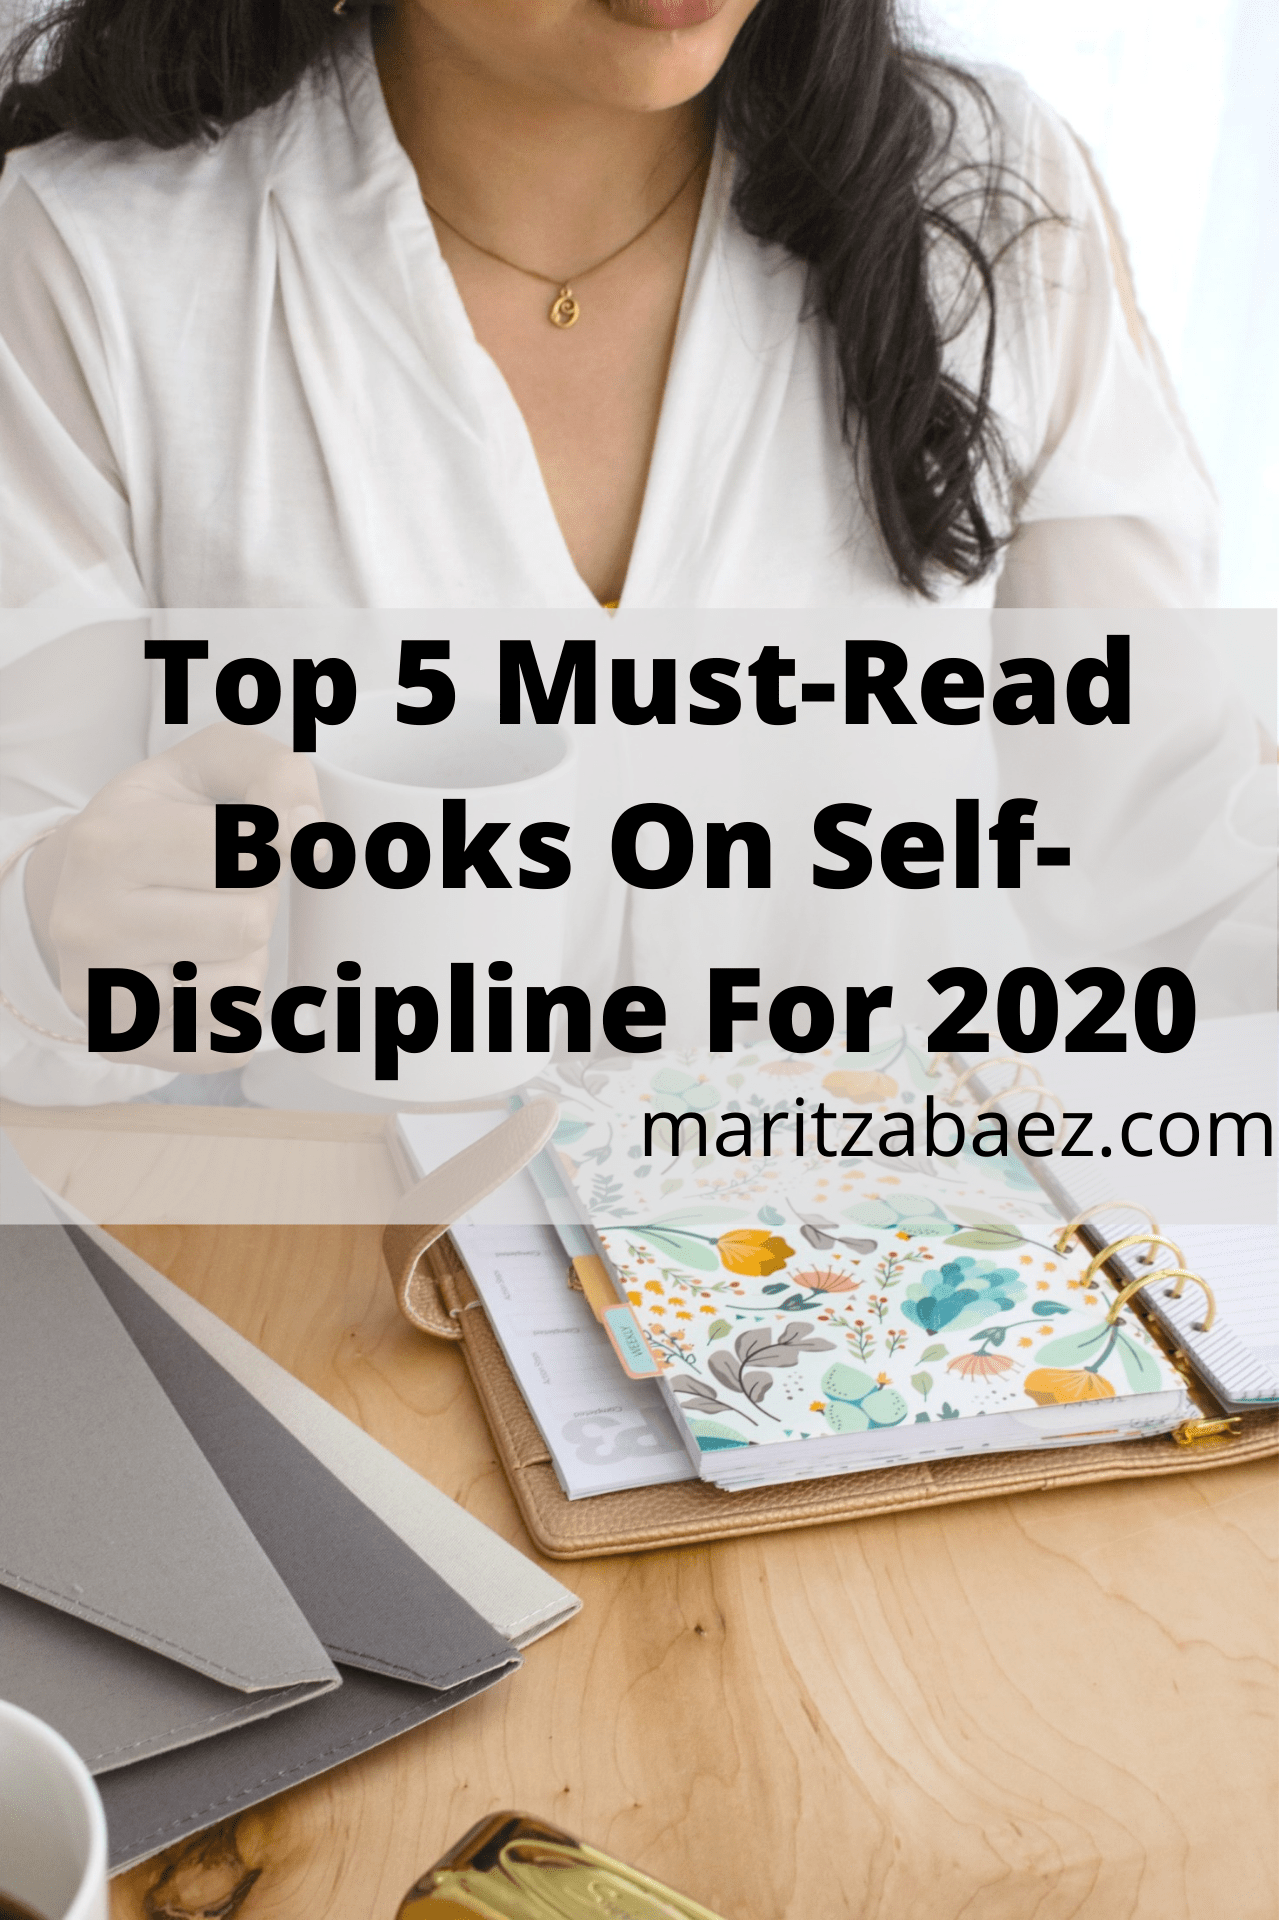 Top 5 Must-Read Books On Self-Discipline For 2020